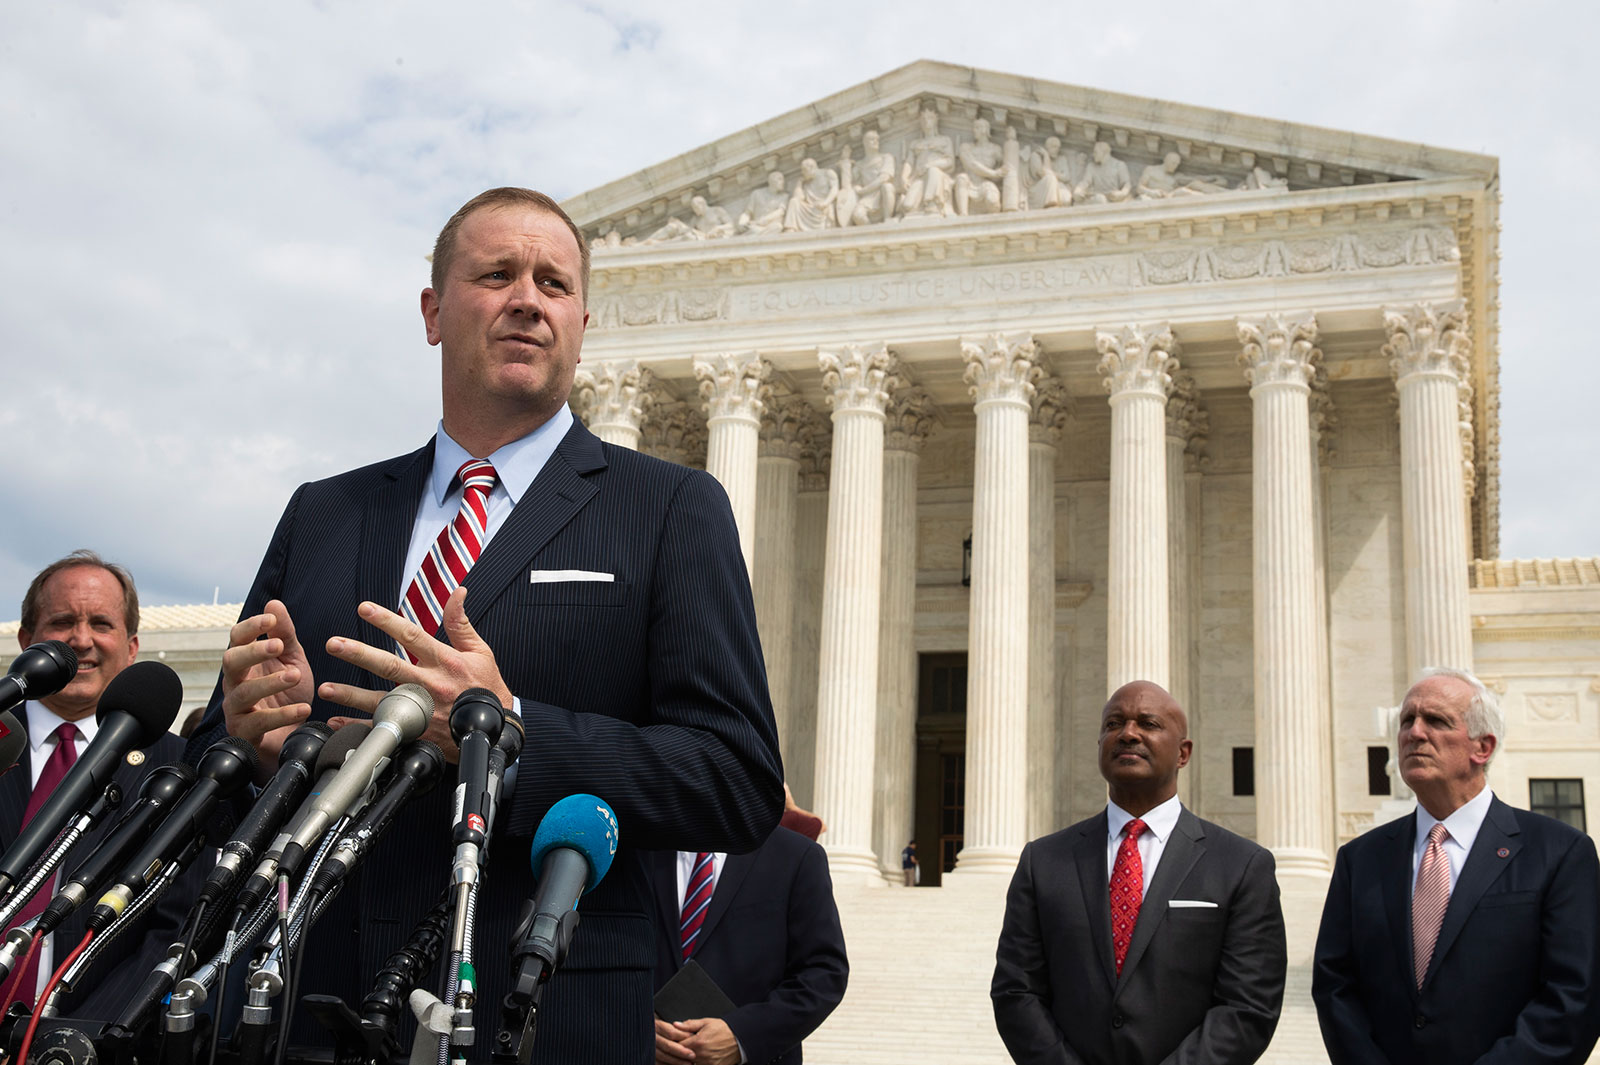 In this September 9, 2019 file photo, Missouri Attorney General Eric Schmitt speaks in front of the US Supreme Court in Washington.